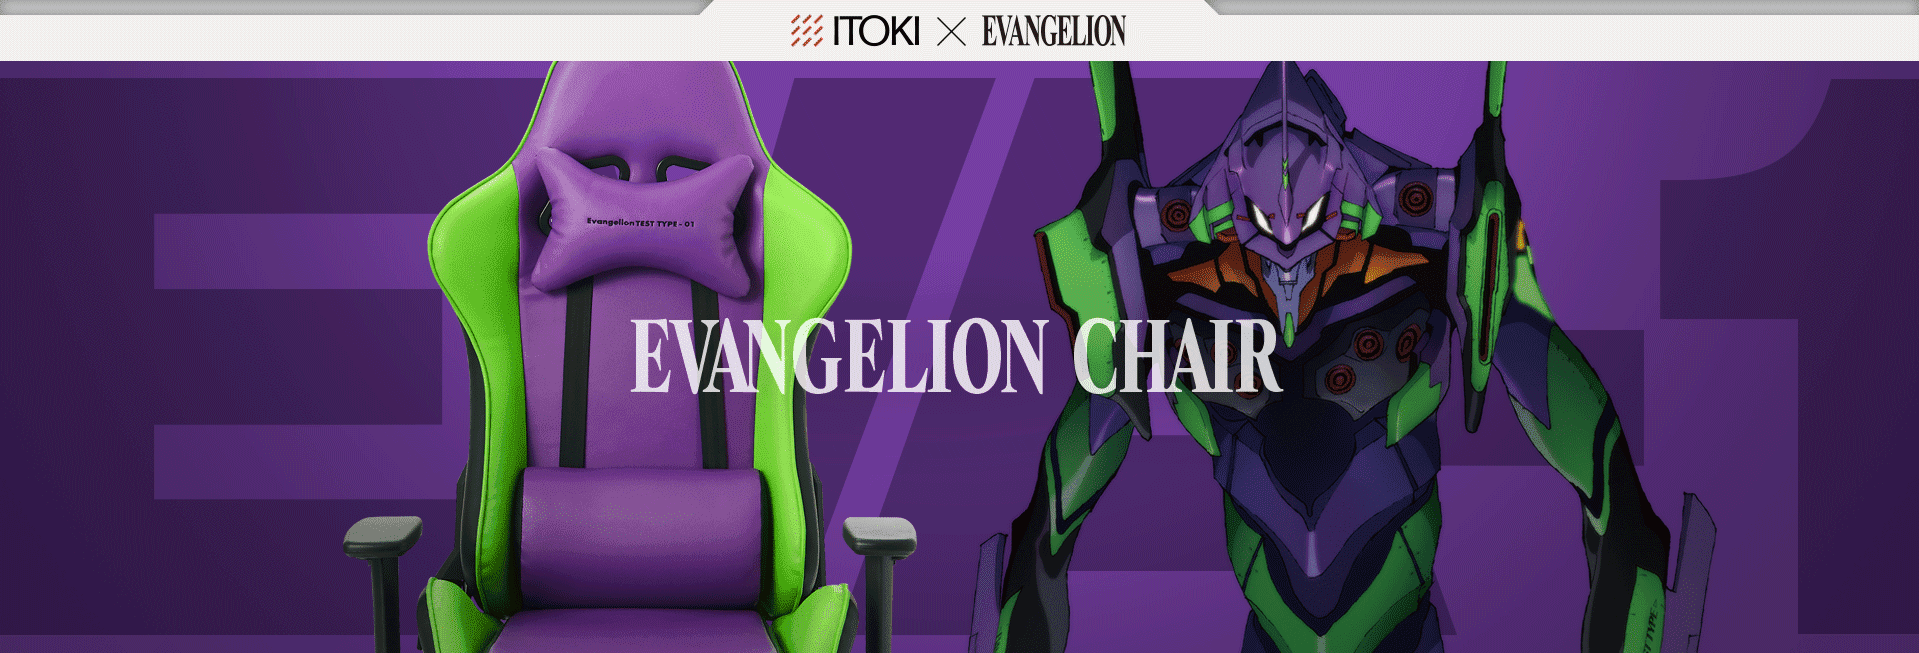 EVANGELION CHAIR